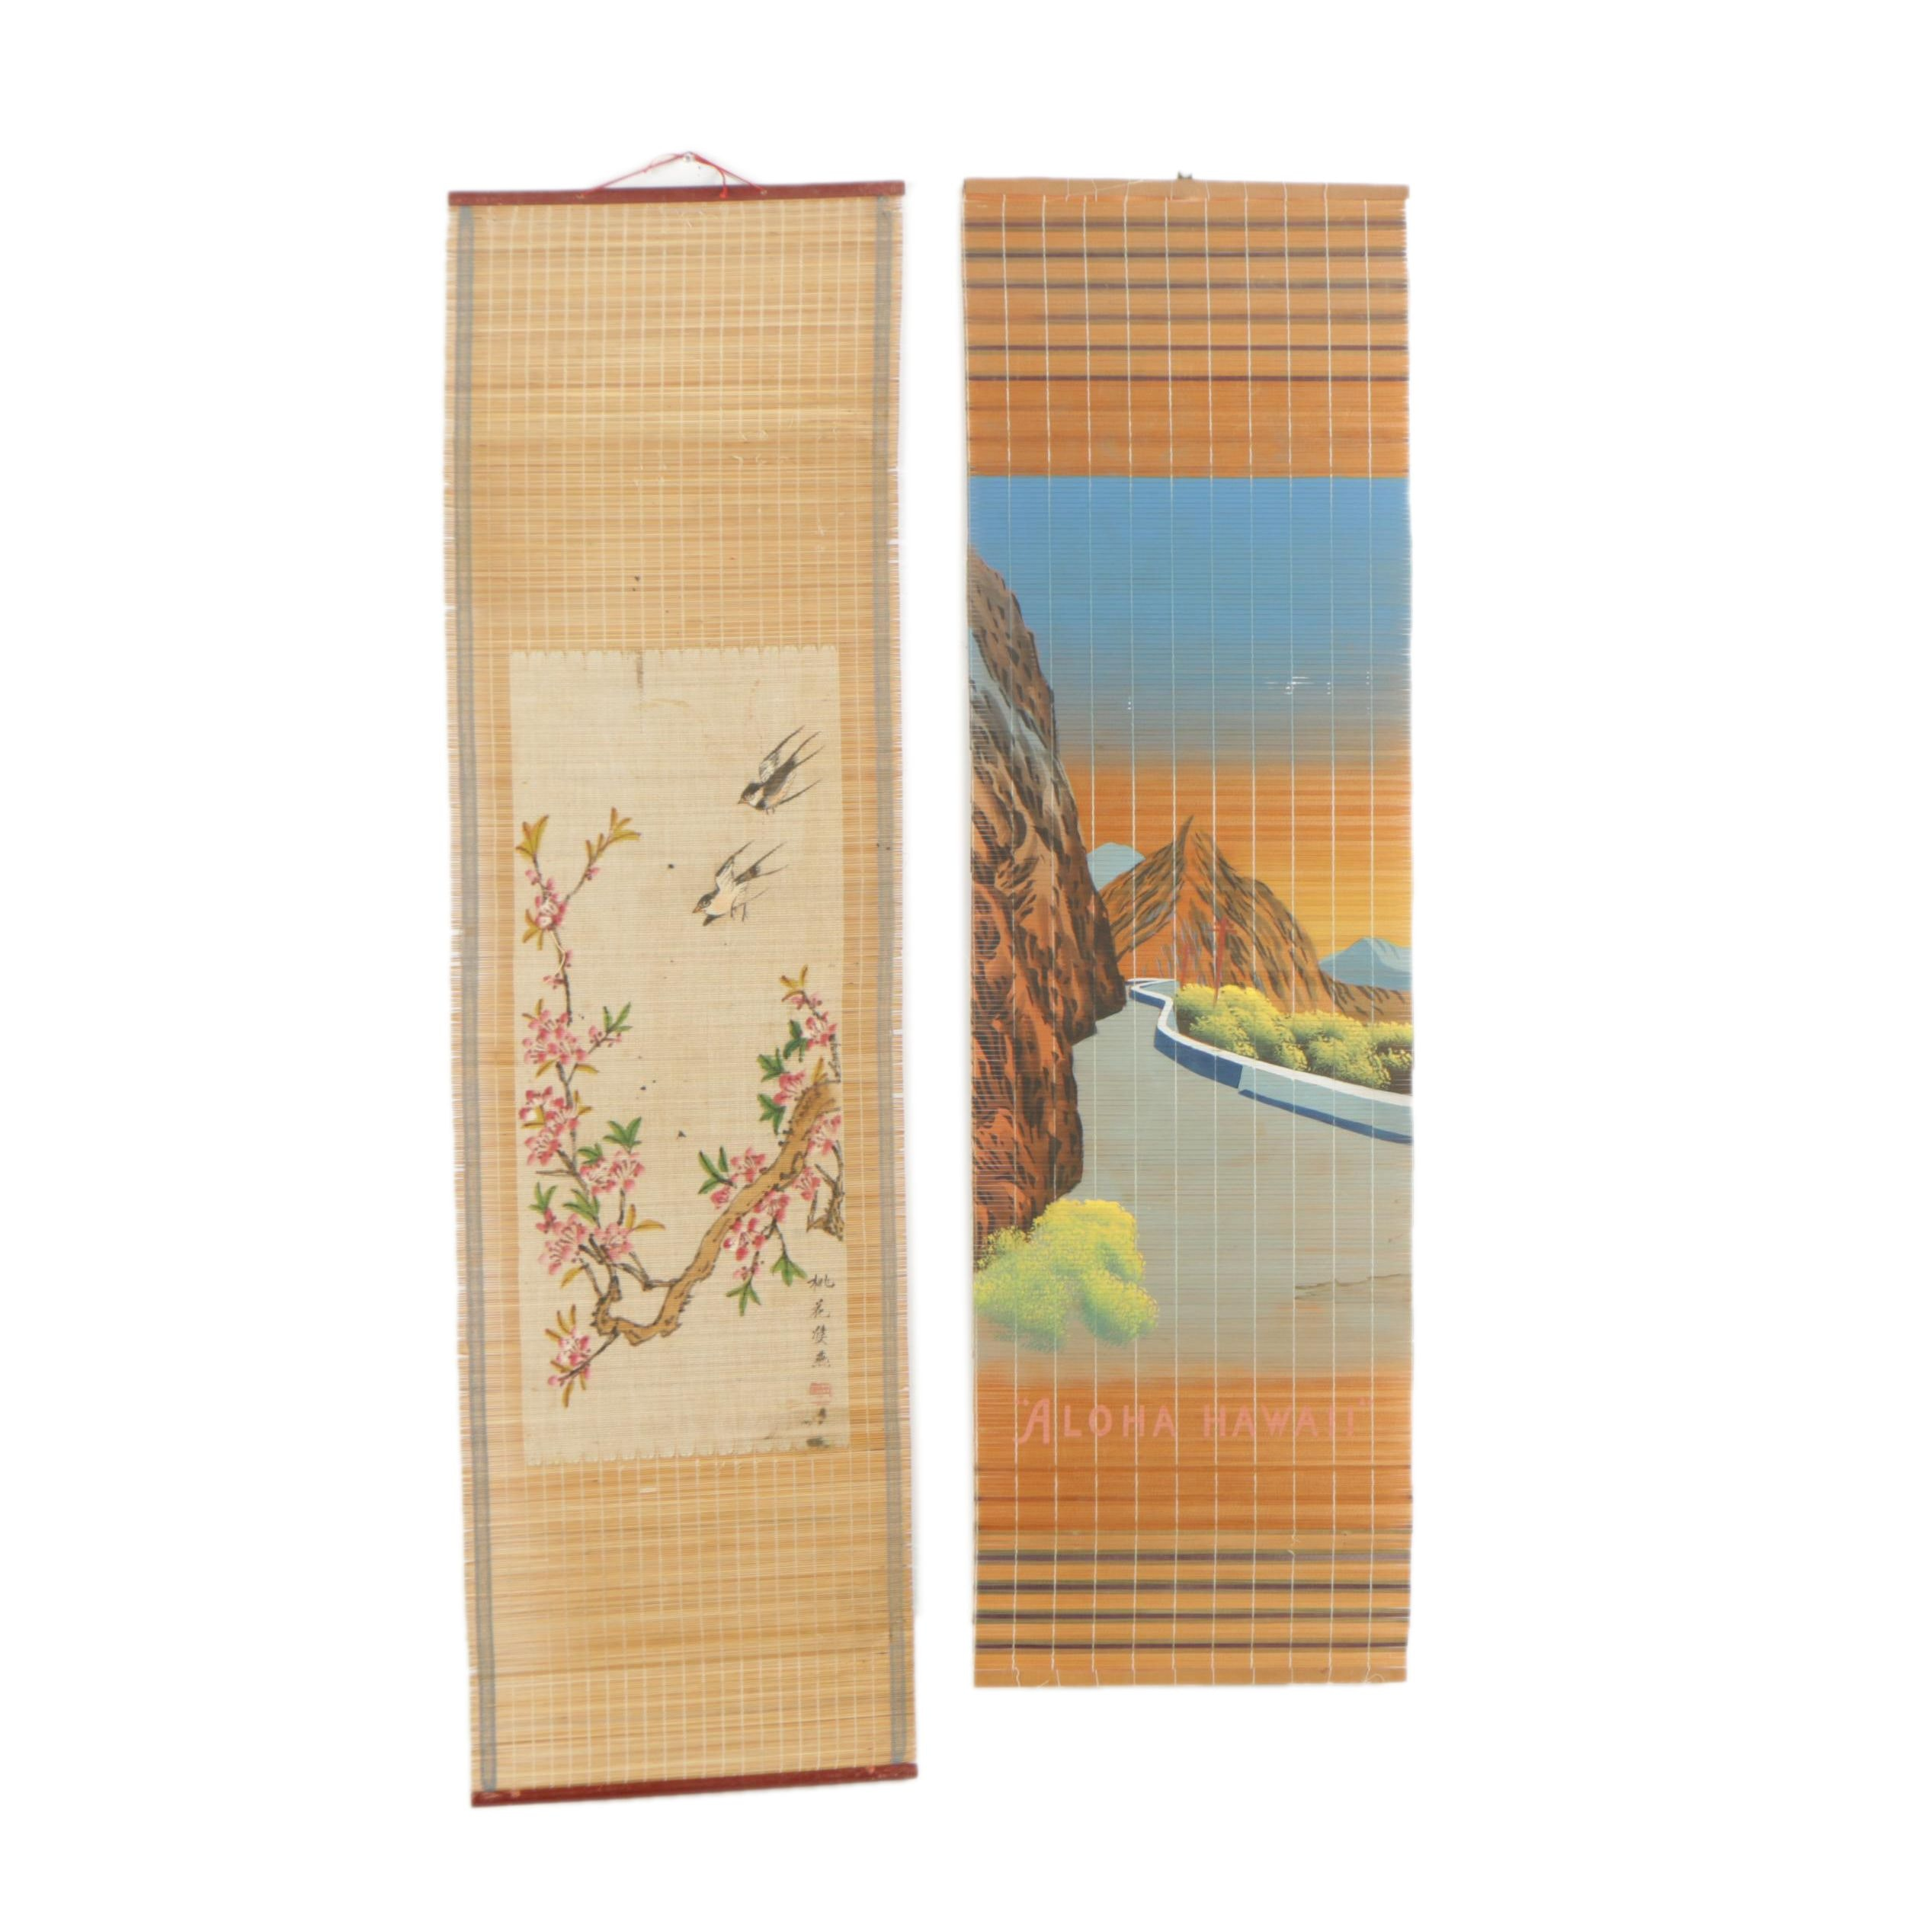 Chinese Hand Painted Hanging Scrolls with Natural Compositions